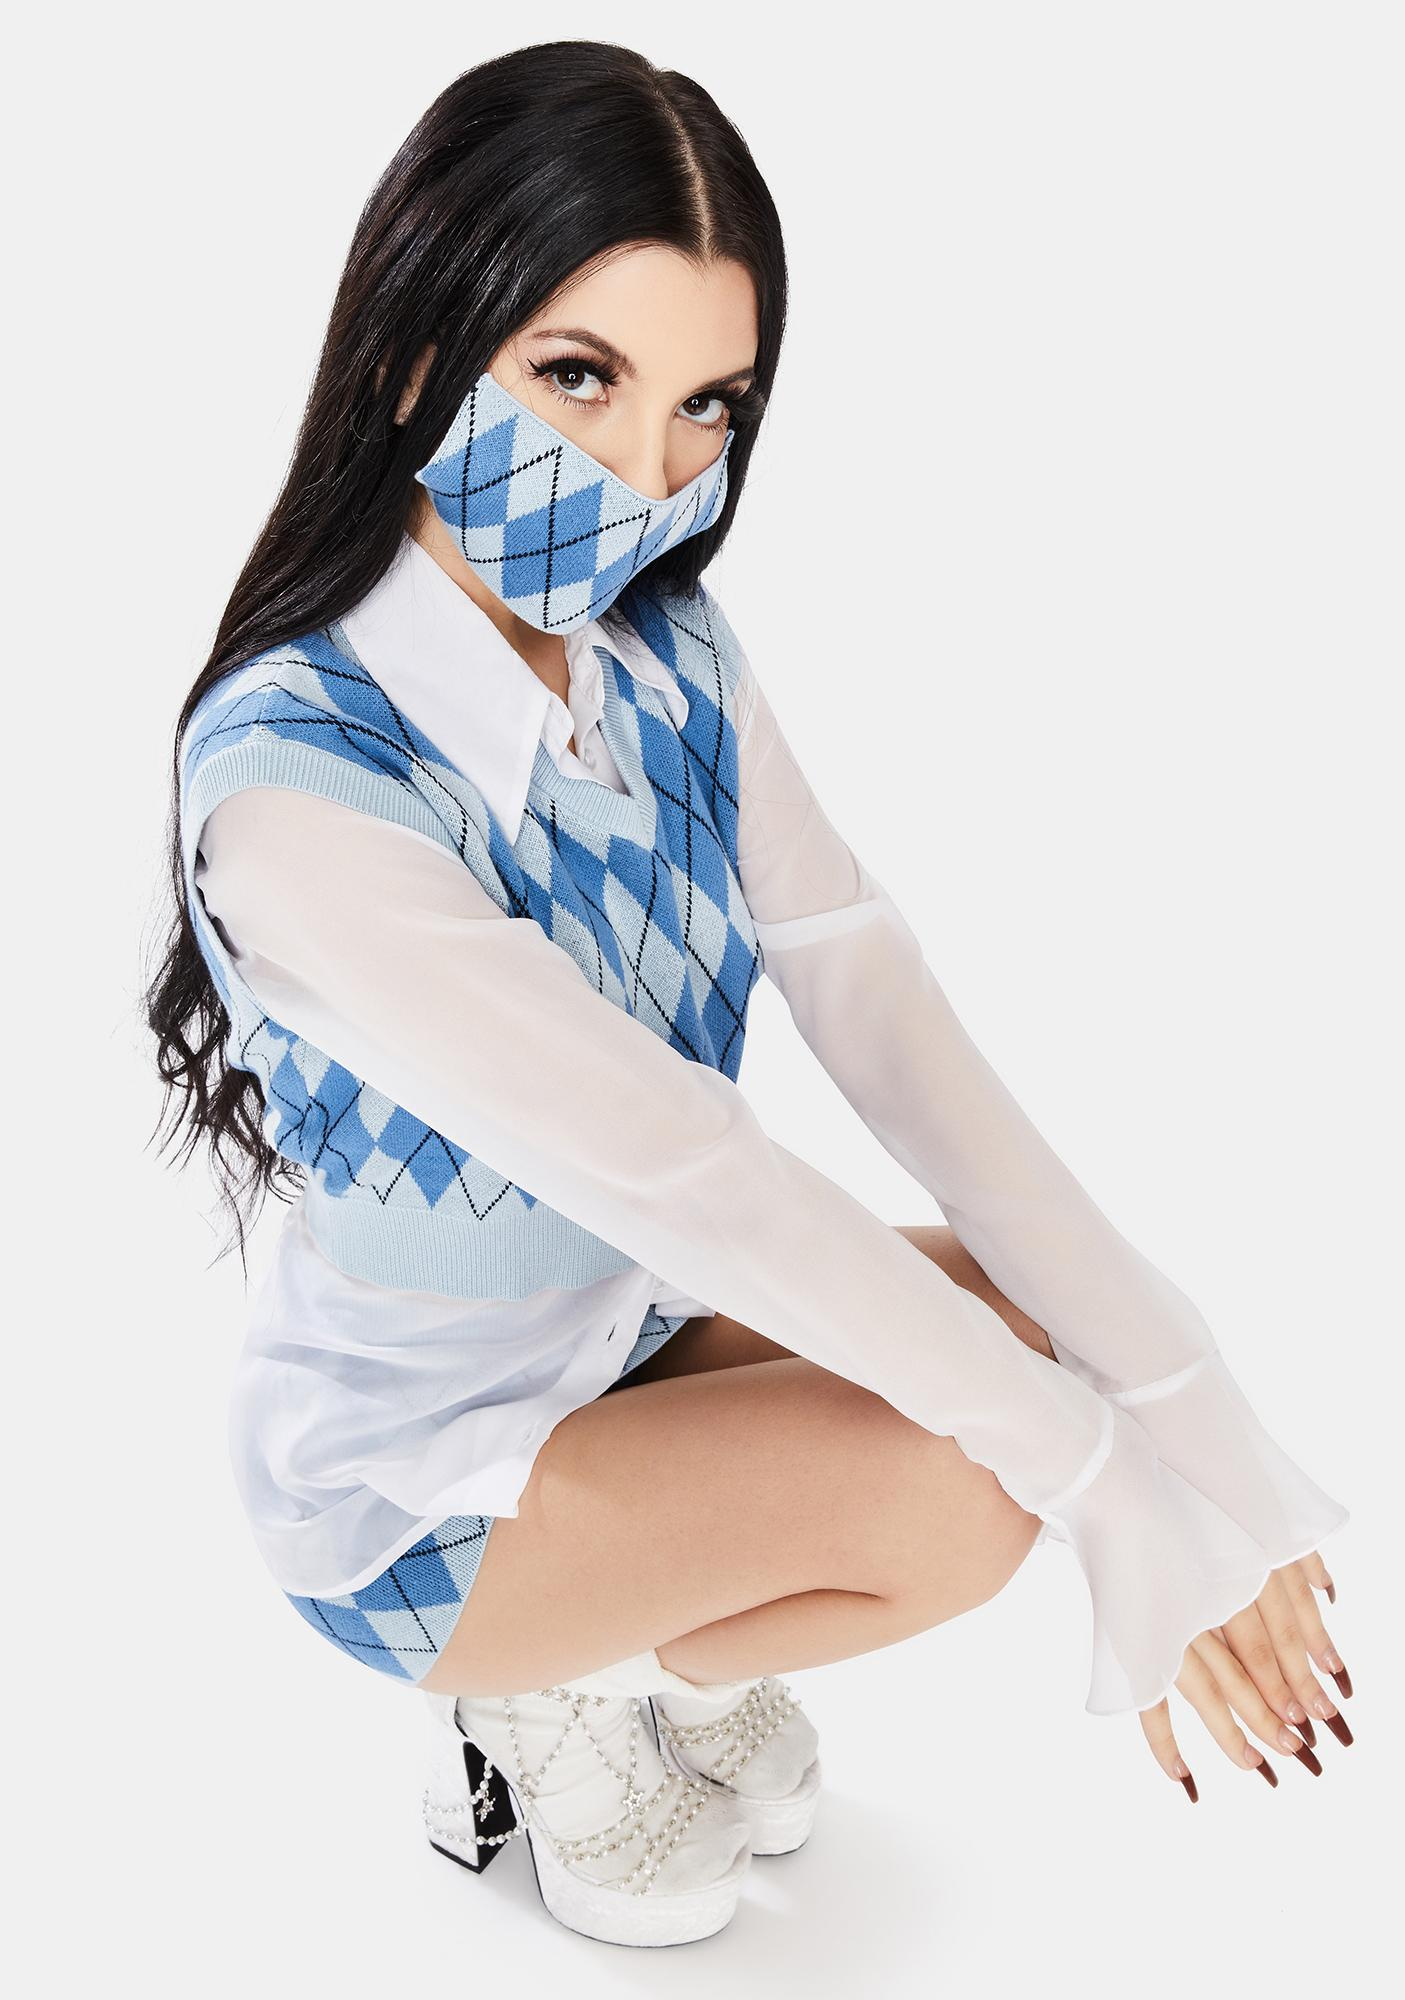 Nii HAi Blue Argyle Face Mask